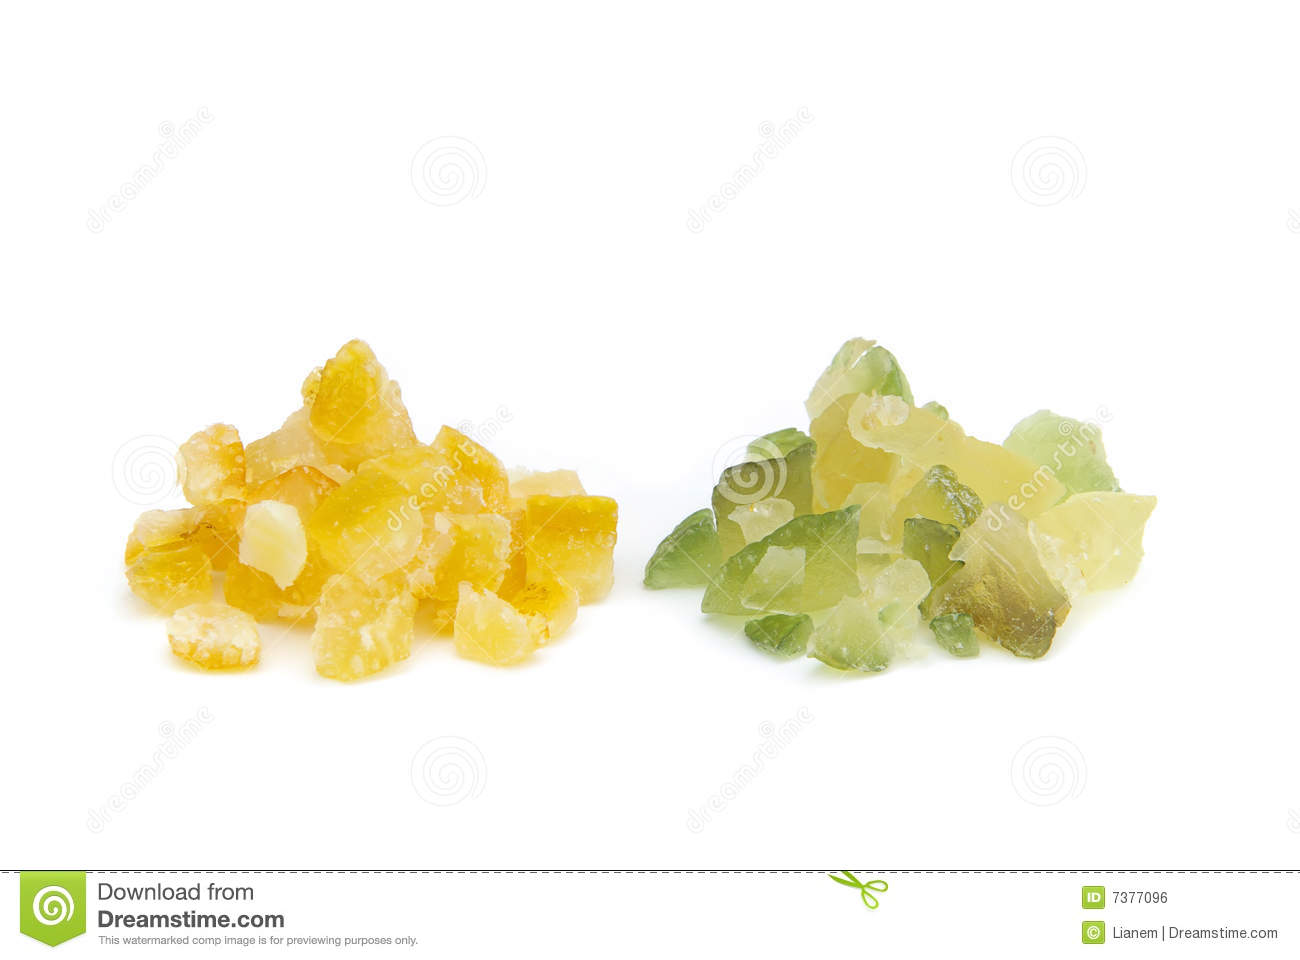 Candied Lemon Peel And Candied Orange Peel Royalty Free Stock Image ...